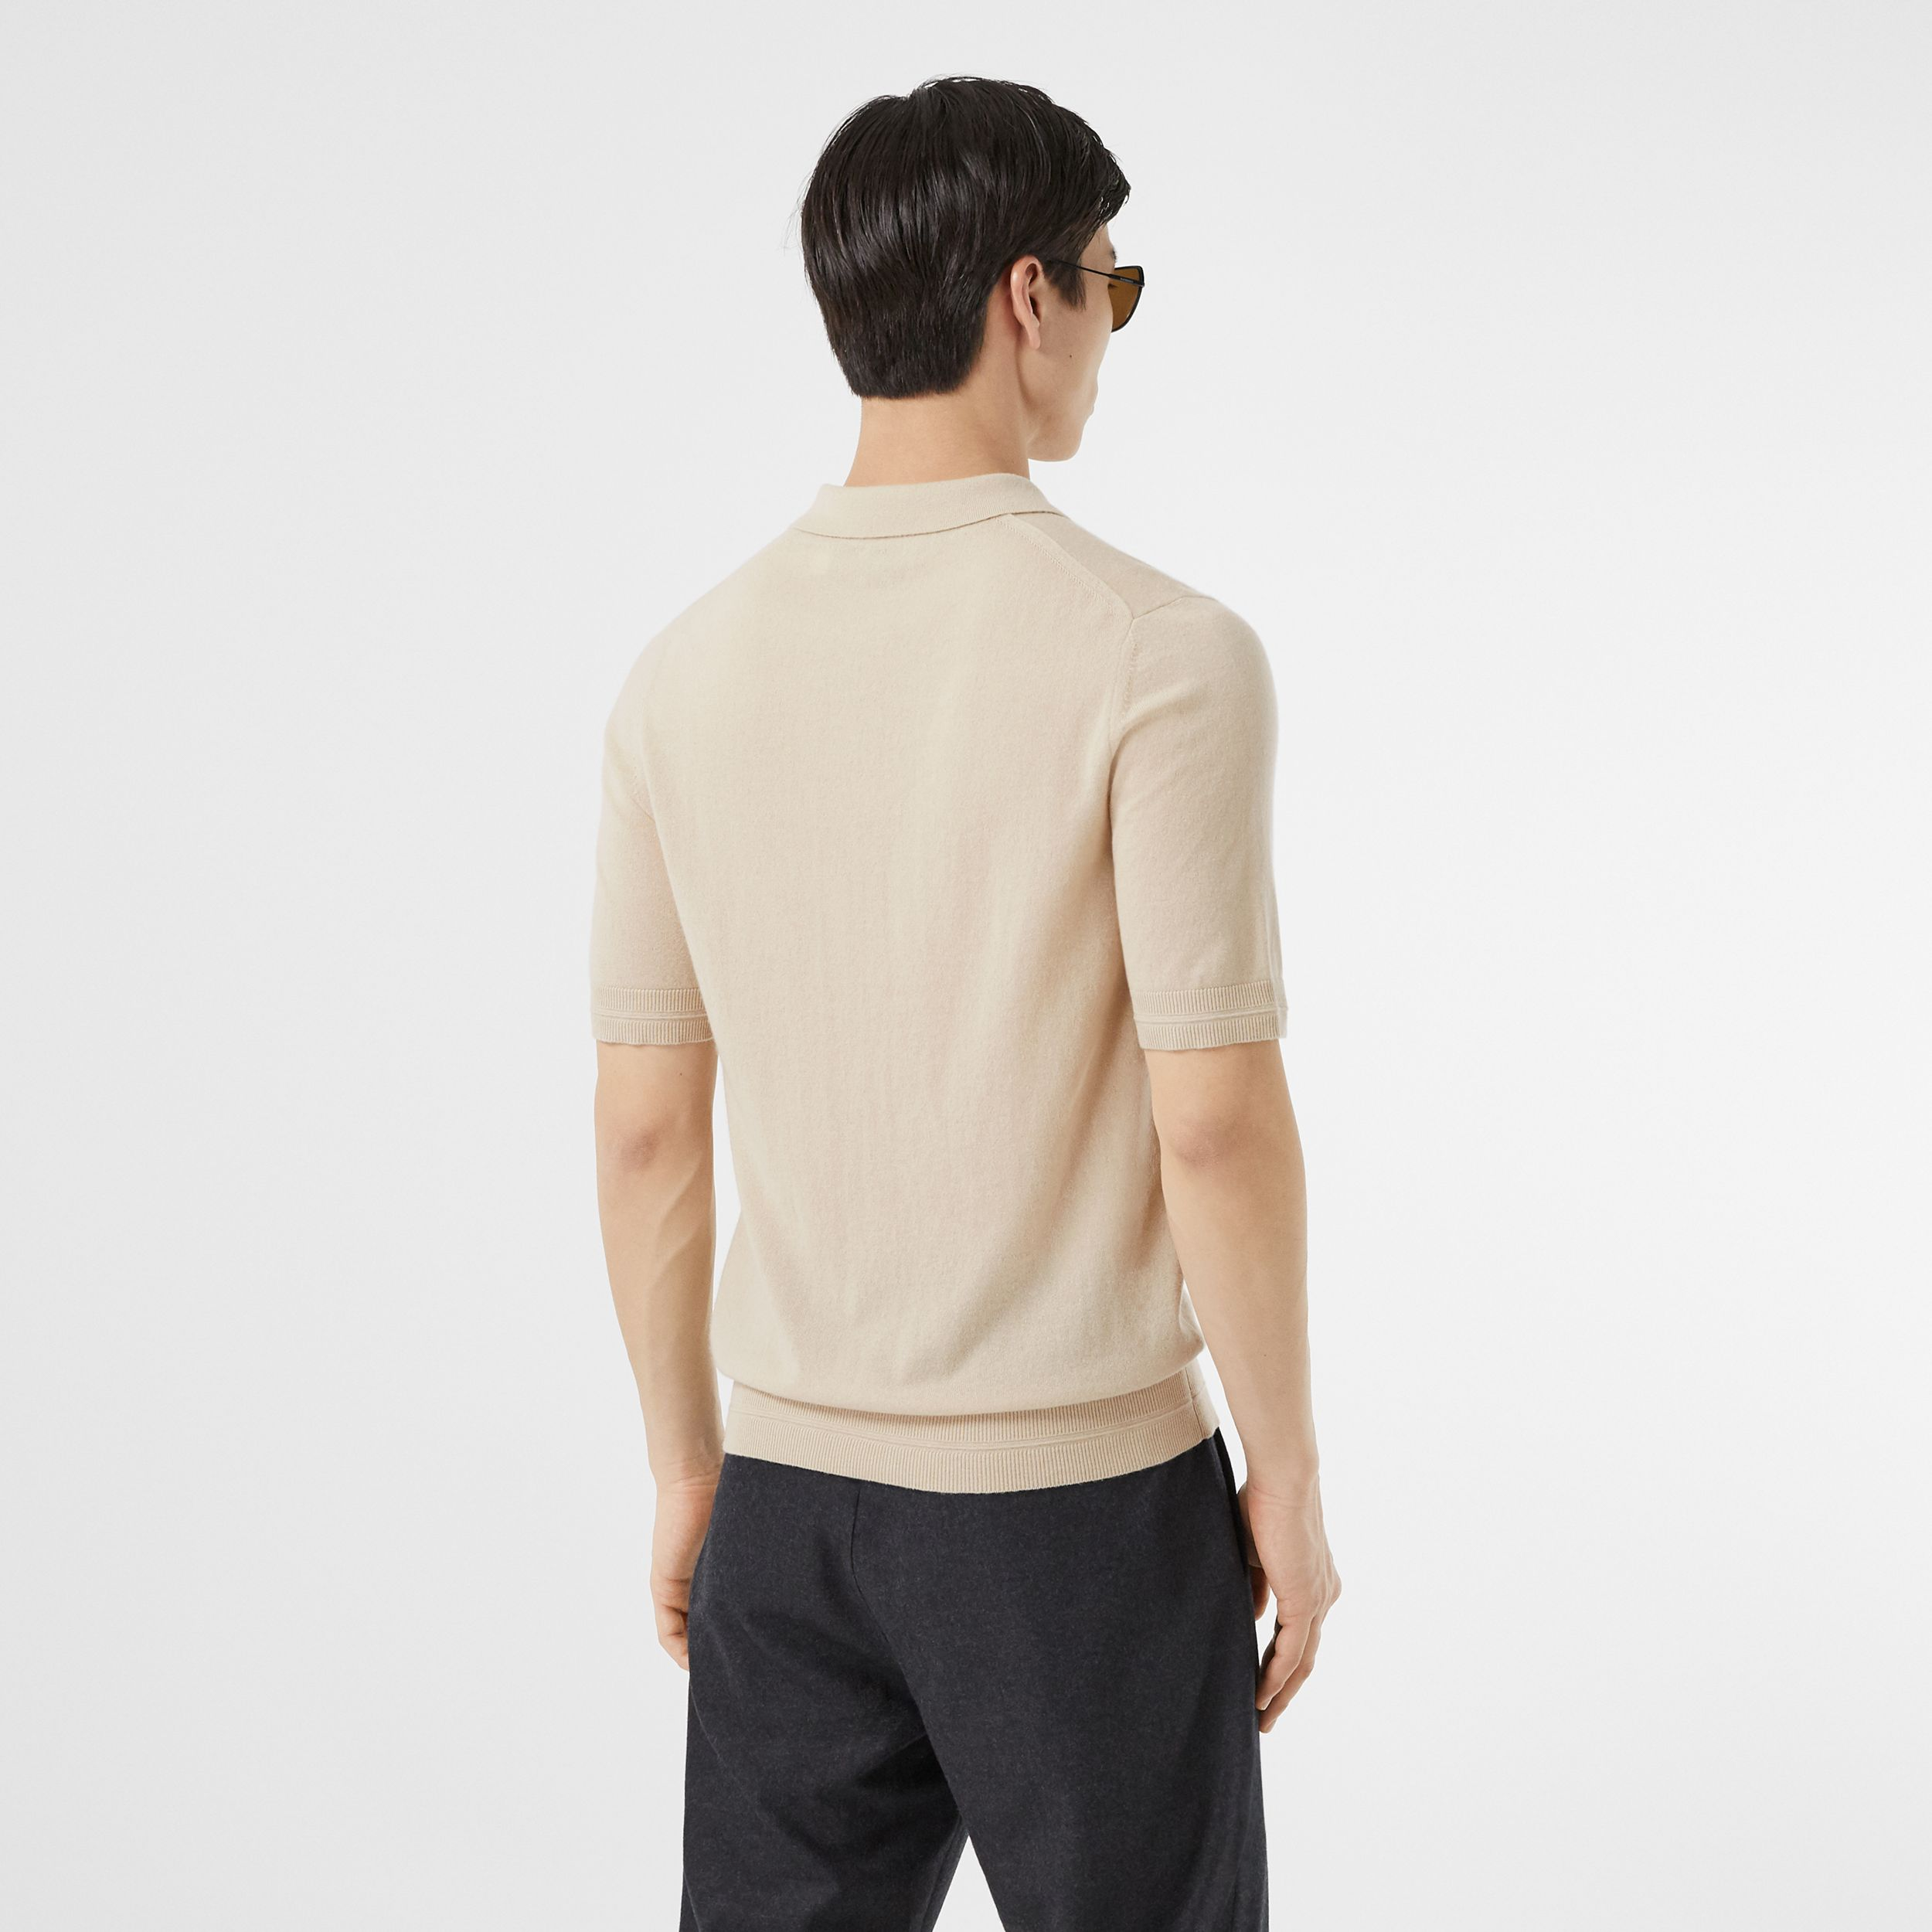 Monogram Motif Cashmere Polo Shirt in Soft Fawn - Men | Burberry Canada - 3